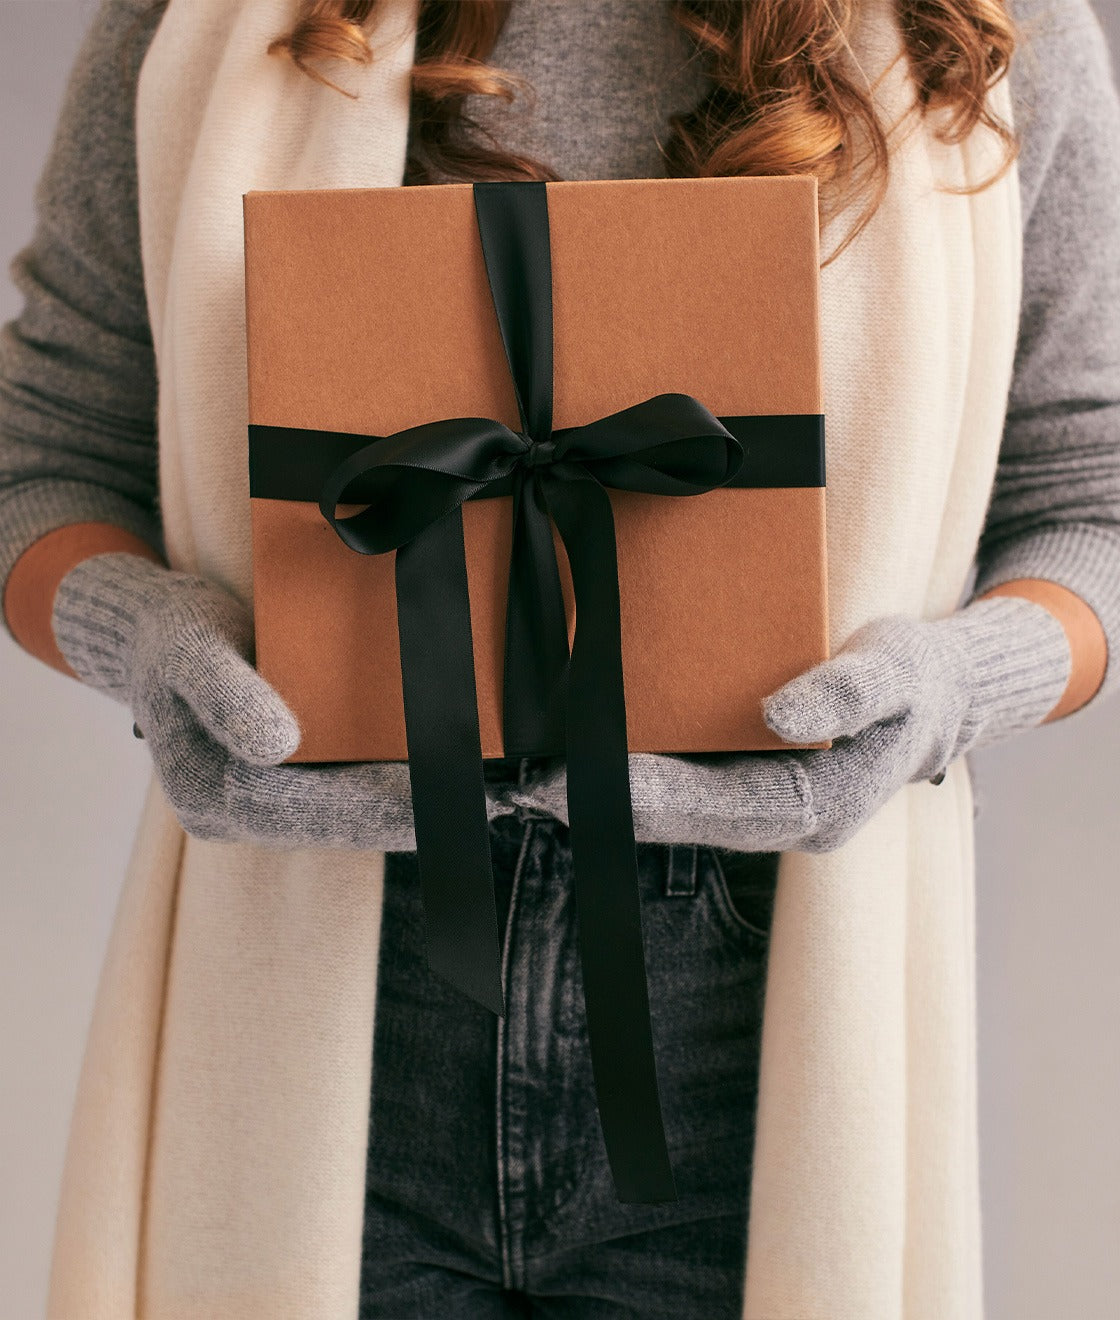 THE HOLIDAY 2020 GIFT GUIDE